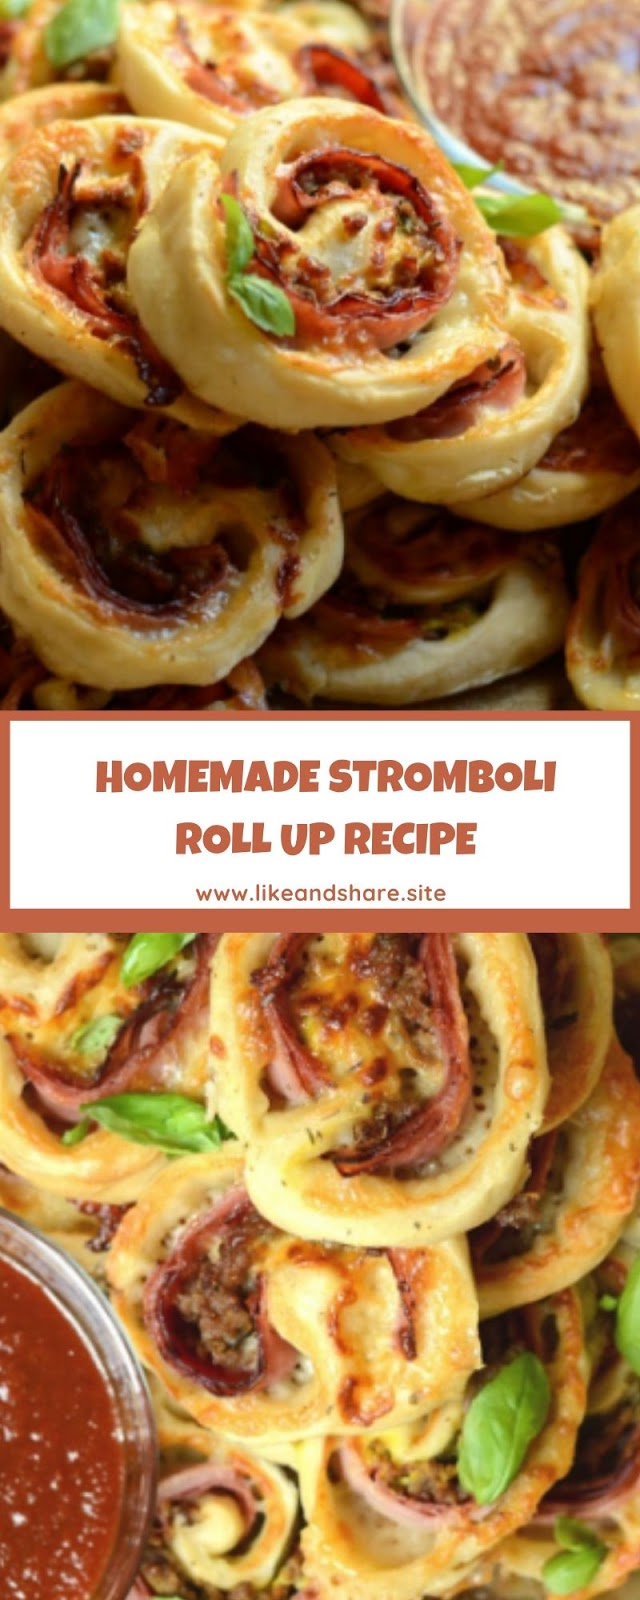 HOMEMADE STROMBOLI ROLL UP RECIPE